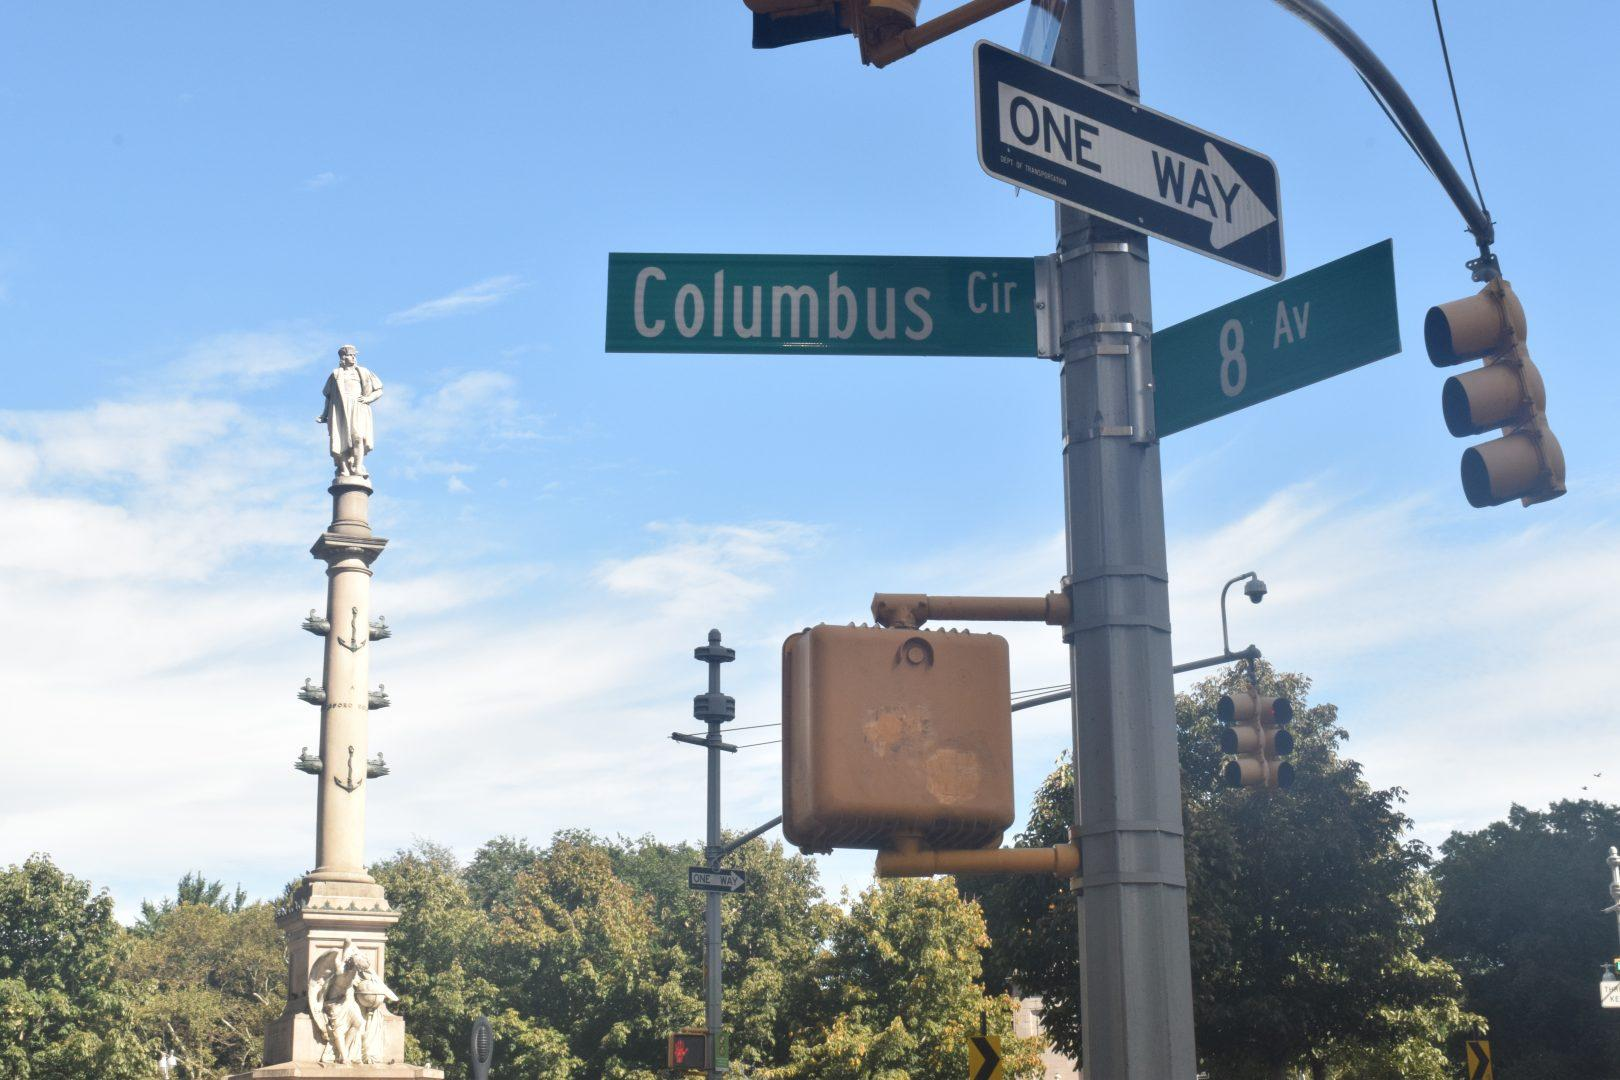 Columbus Circle sits at the center of New York City's most recent debate about the controversial figure.